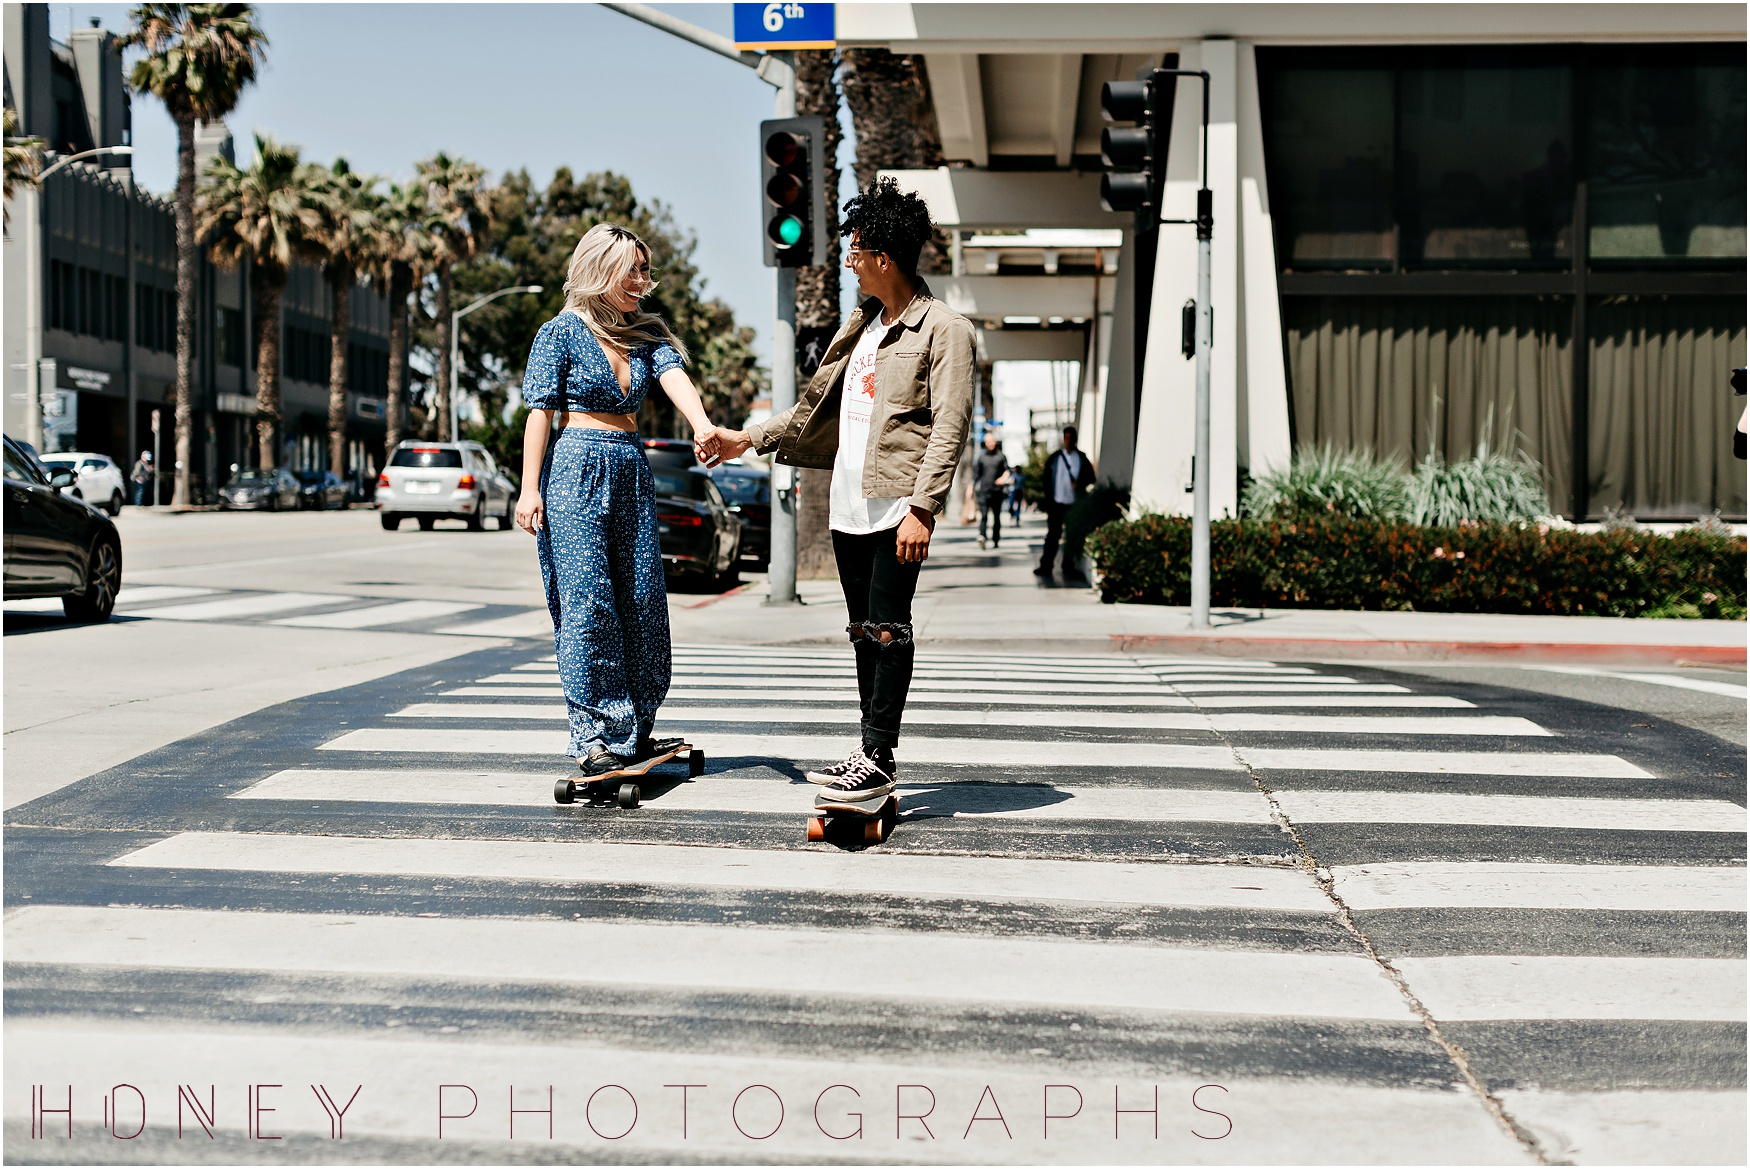 santa-monica-engagement-urban-street-skateboard-downtown25.jpg